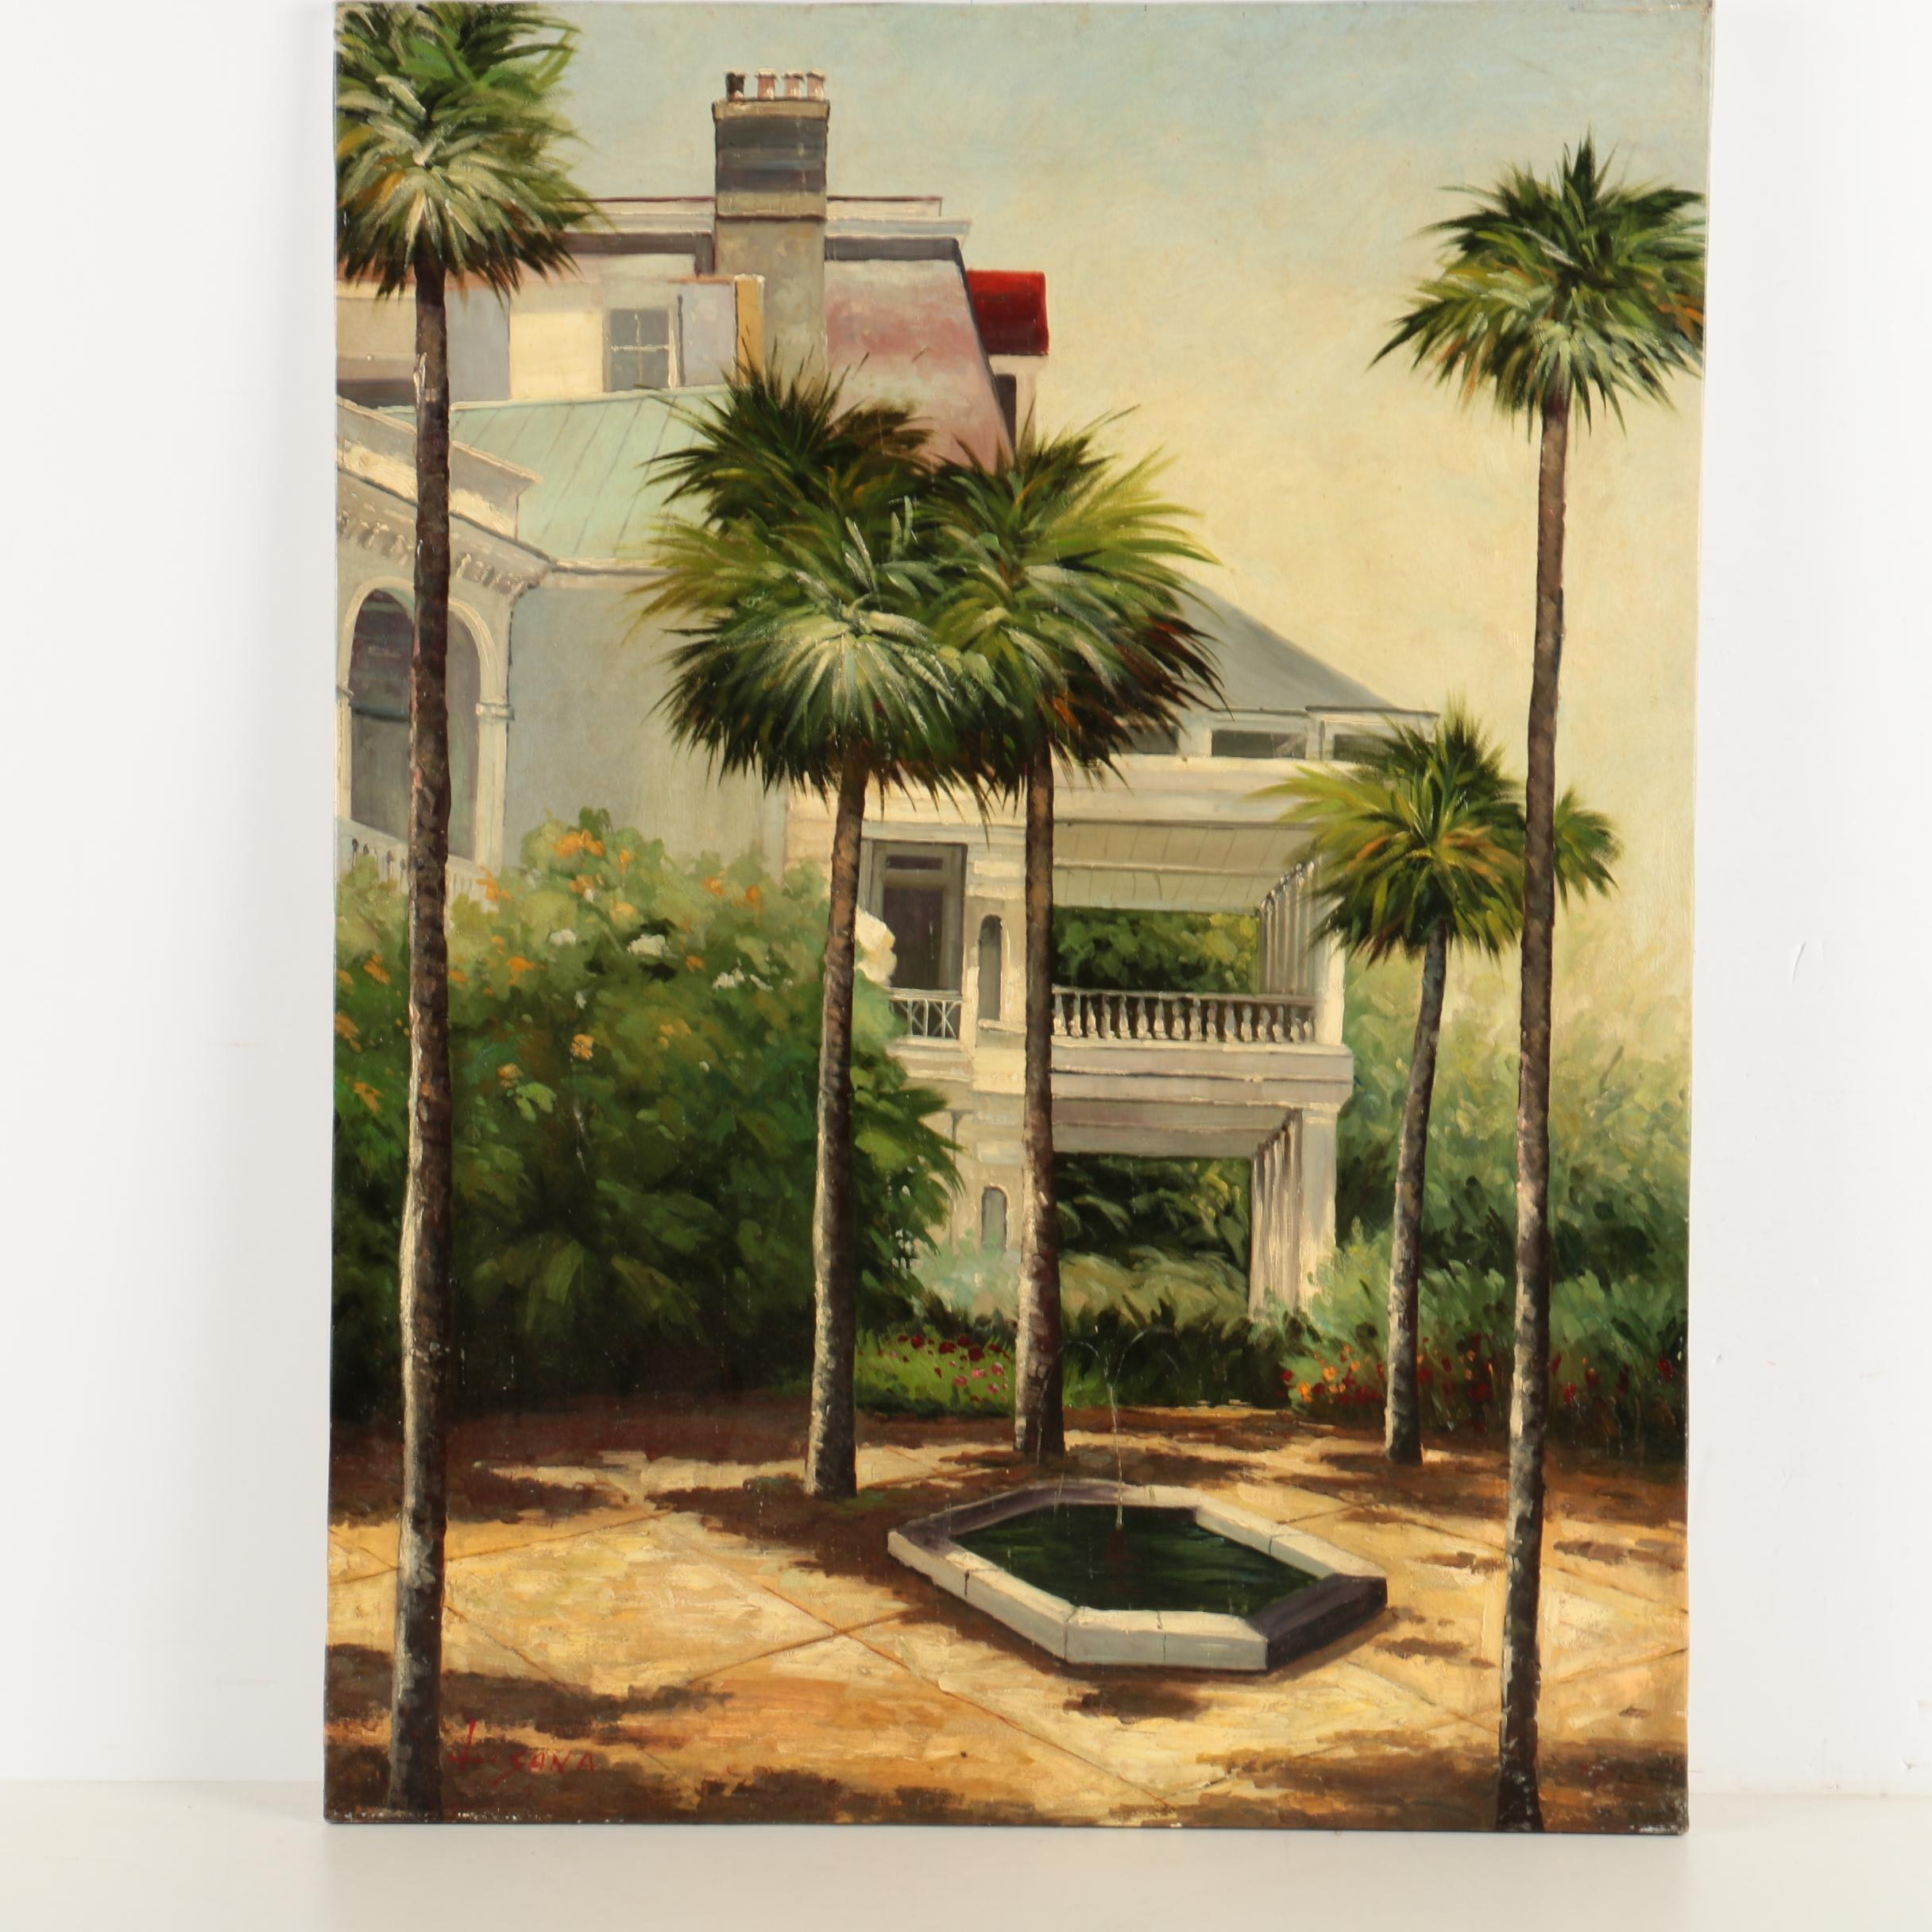 Lisana Oil Painting on Canvas of a Courtyard with Palm Trees